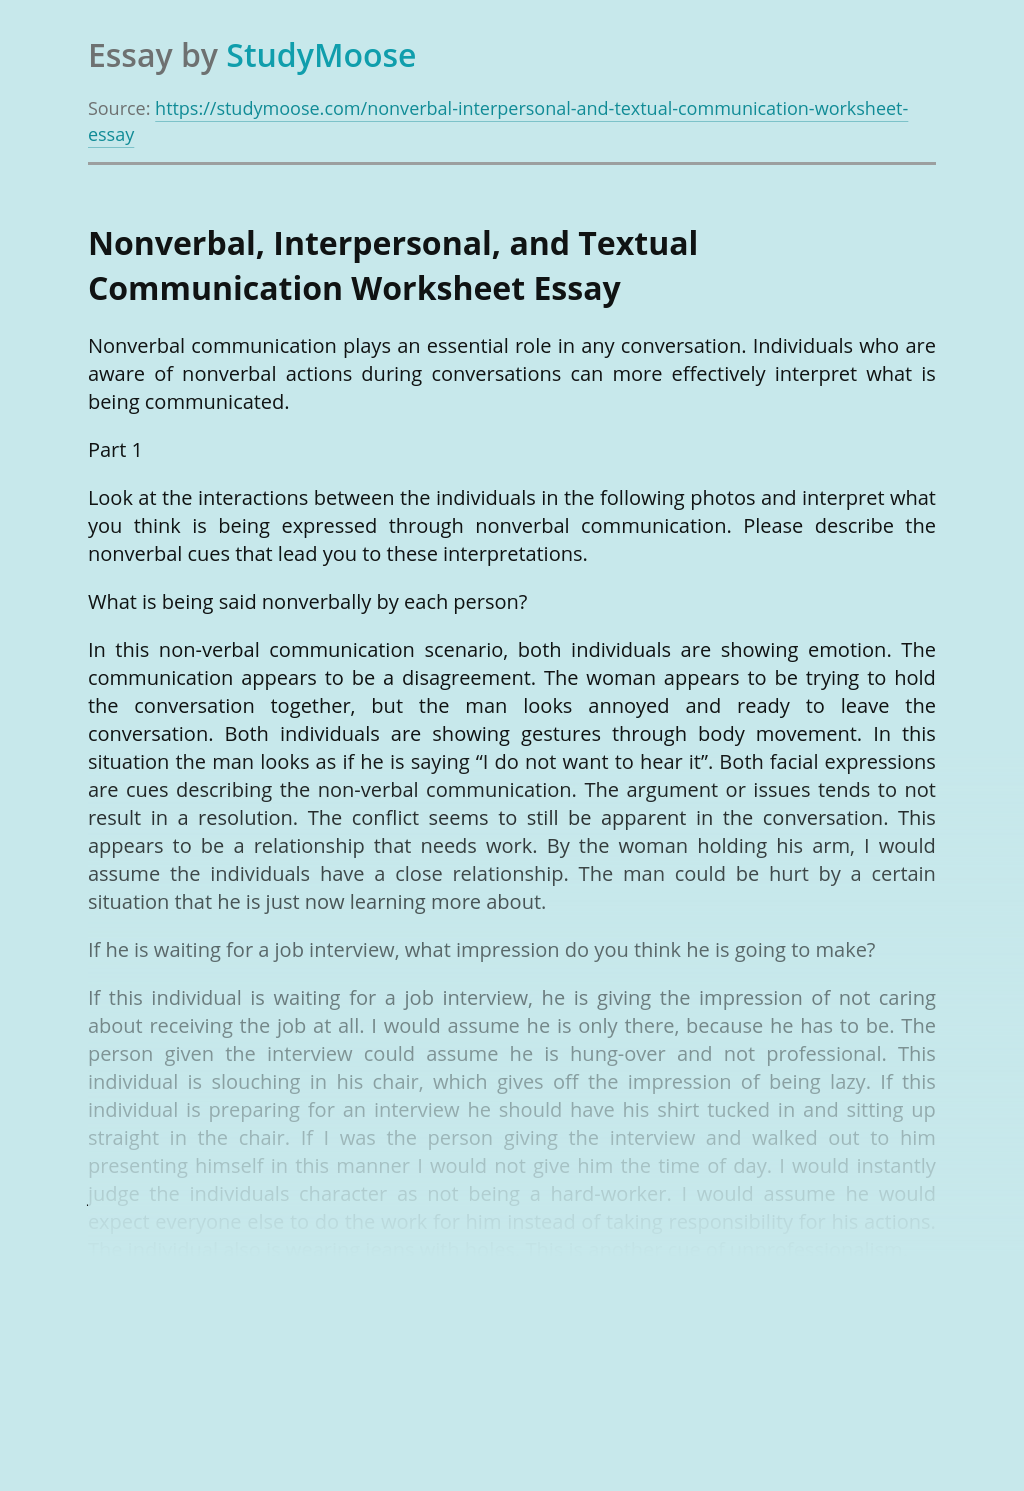 Nonverbal, Interpersonal, and Textual Communication Worksheet